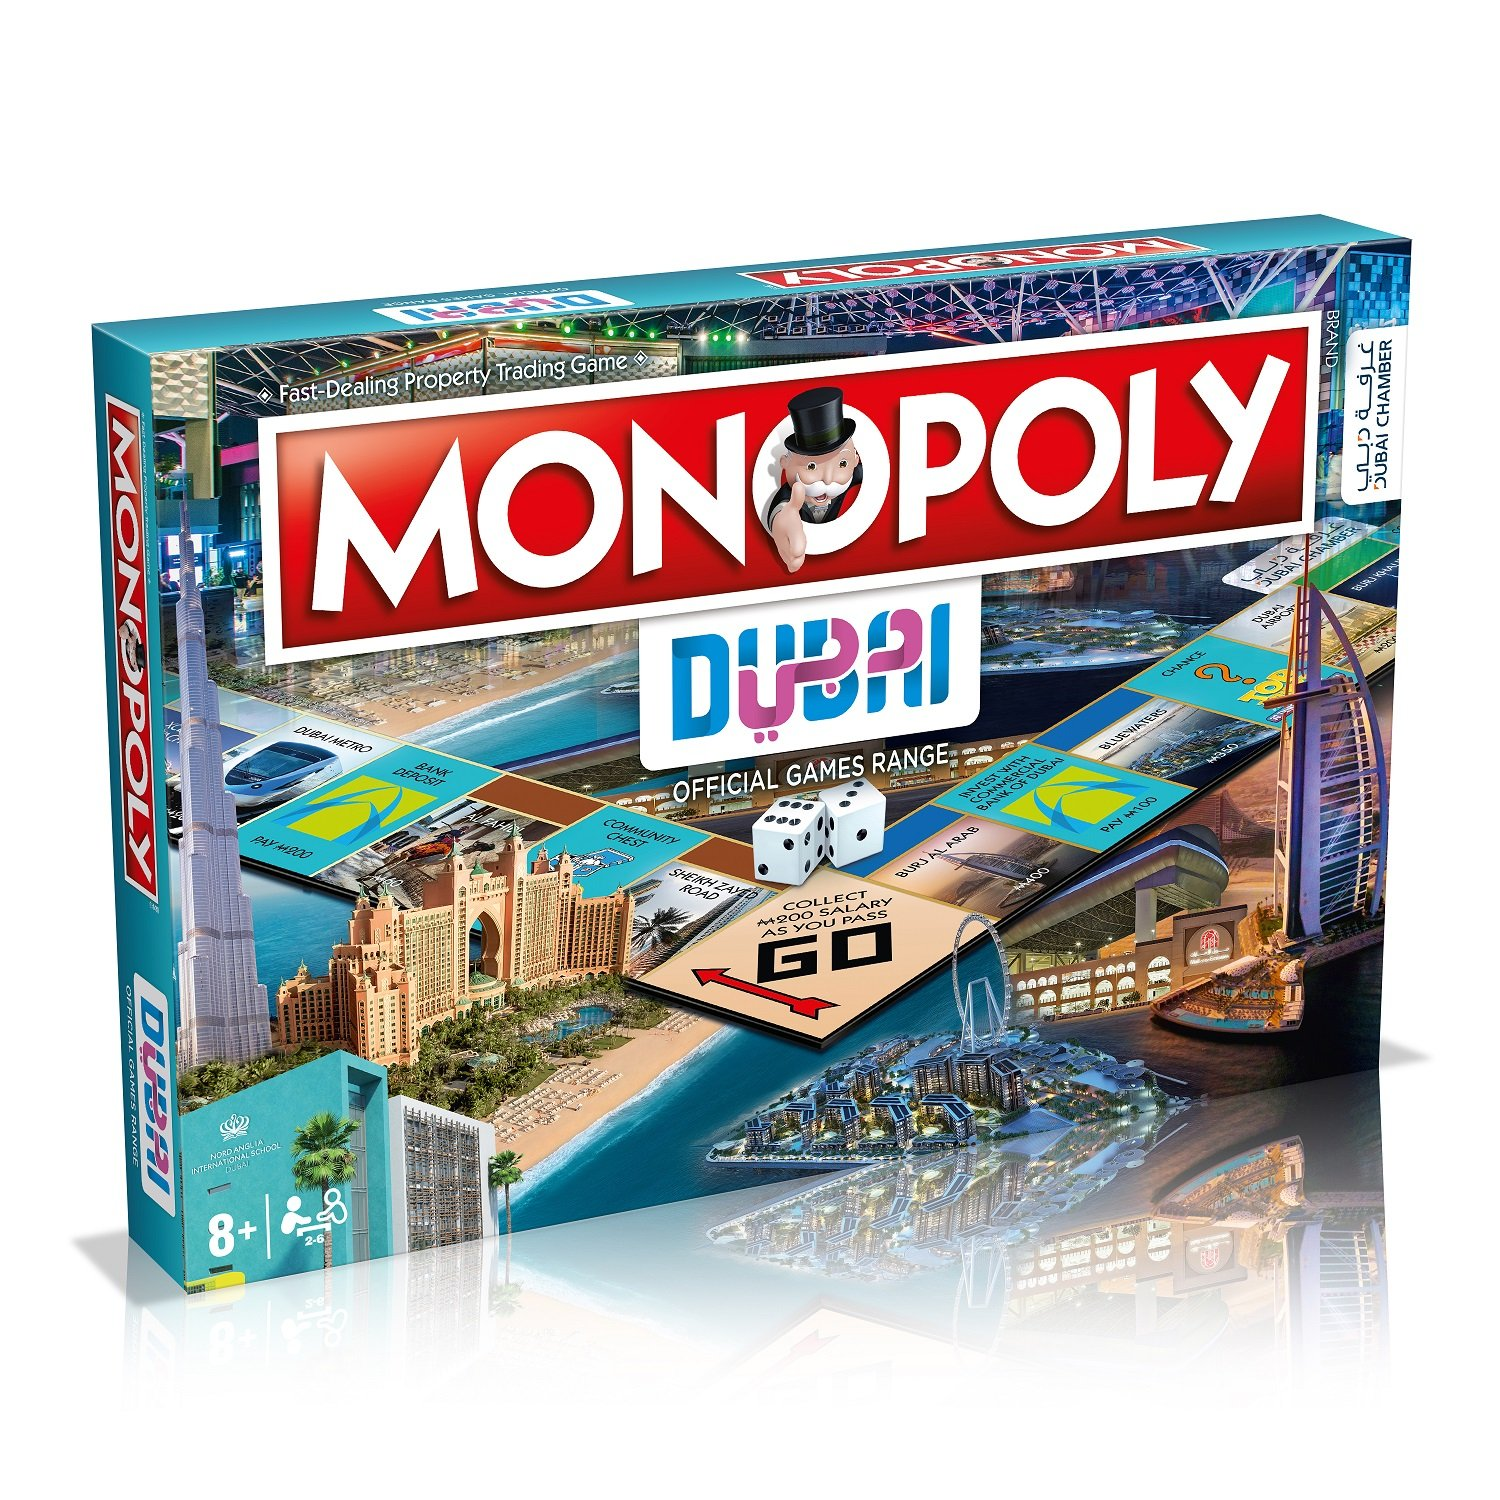 Monopoly Dubai was officially released earlier this week. Photo courtesy: Twitter/@DXBMediaOffice